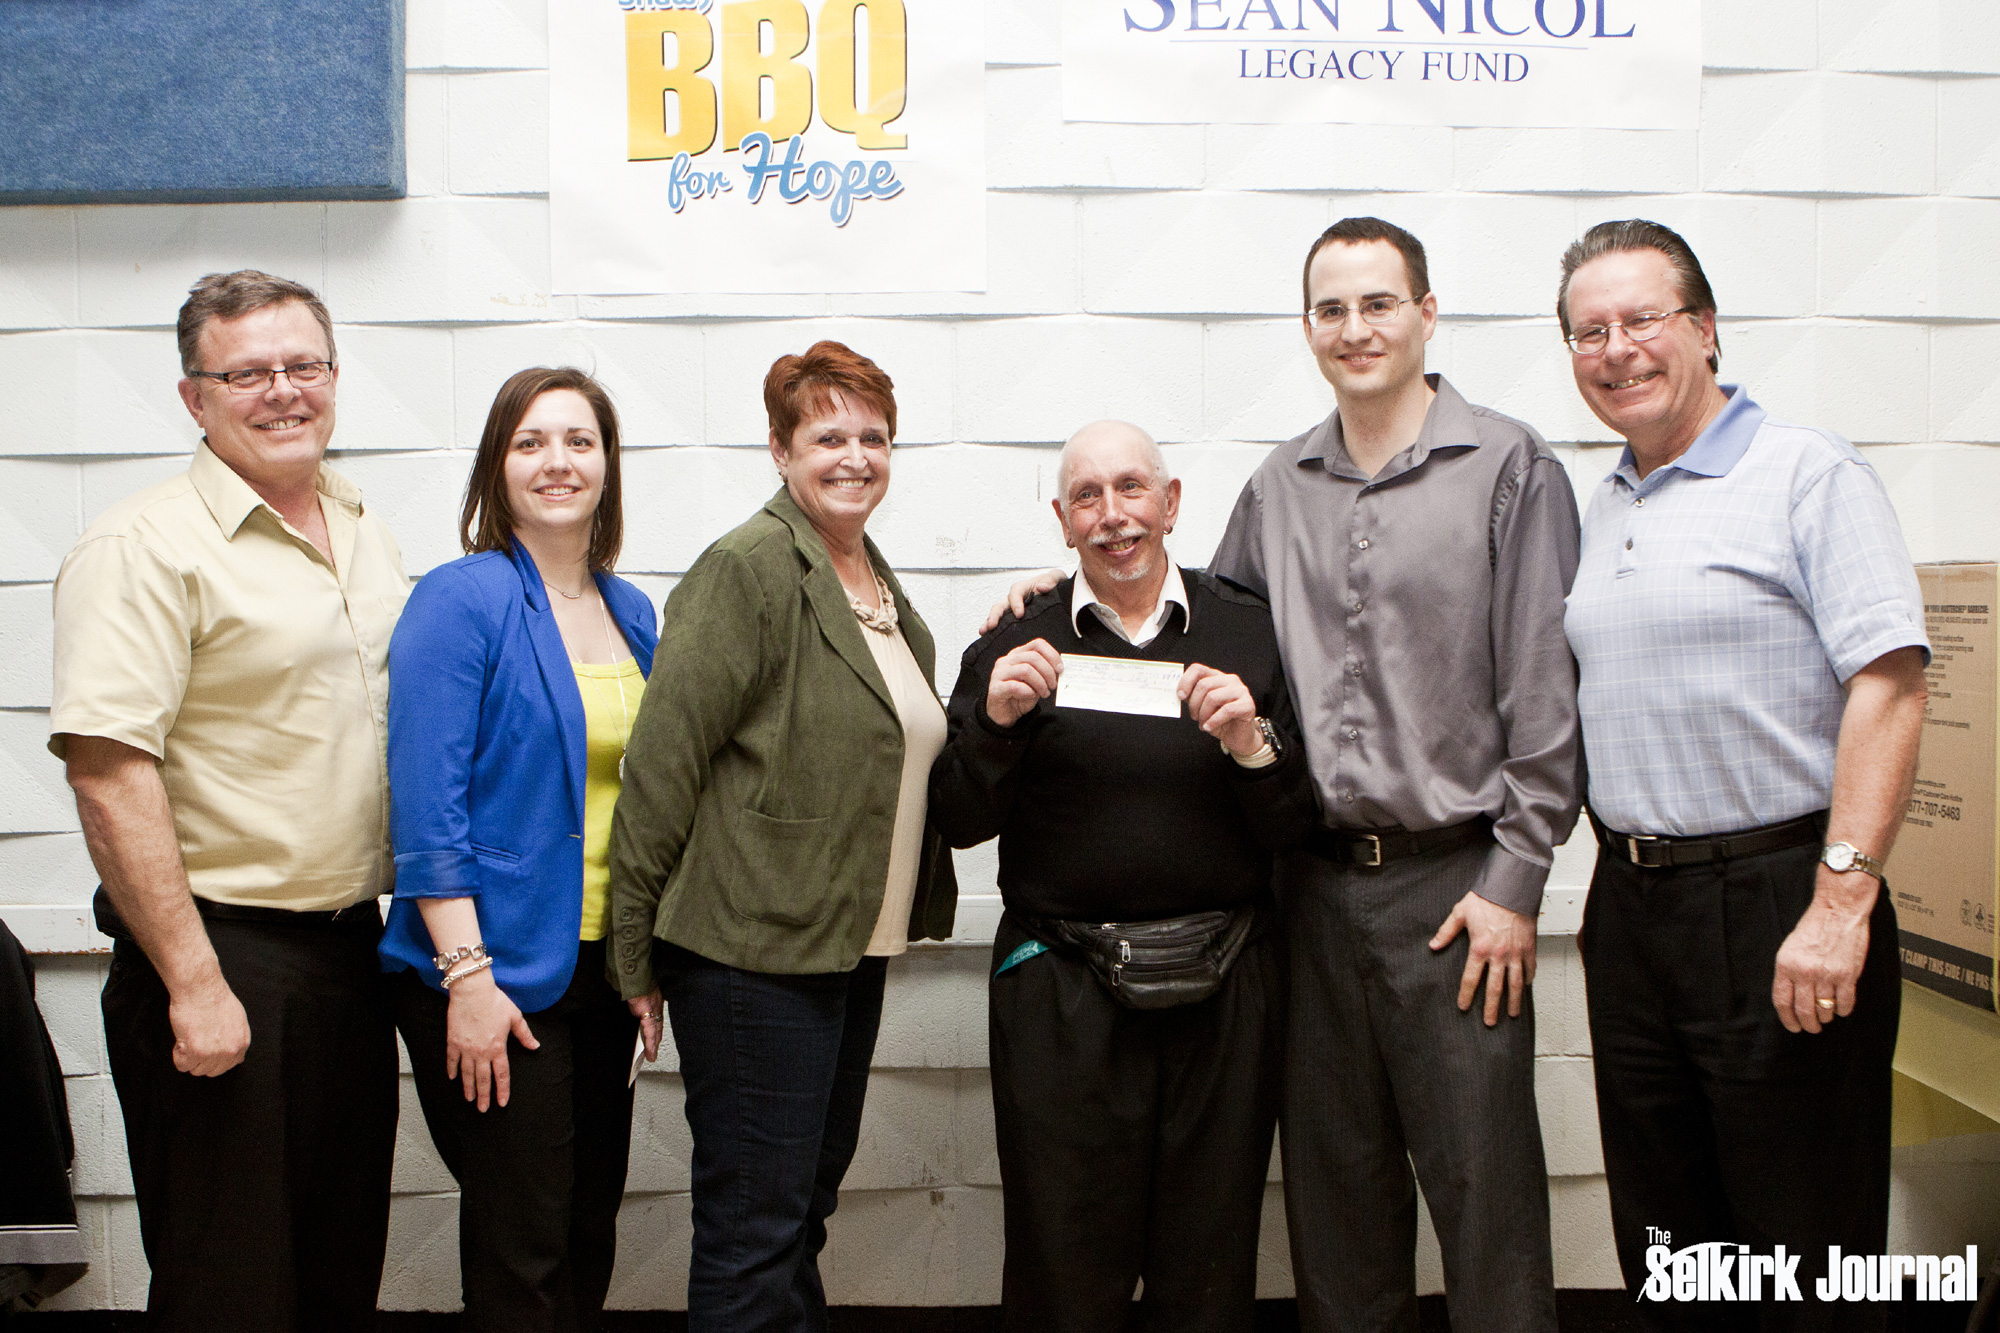 Sponsors George Hacking and Larry Johannson join SNLF committee members to present Association for Community Living Selkirk with a $100 Grant. This is the first grant ever made by the Sean Nicol Legacy Fund!